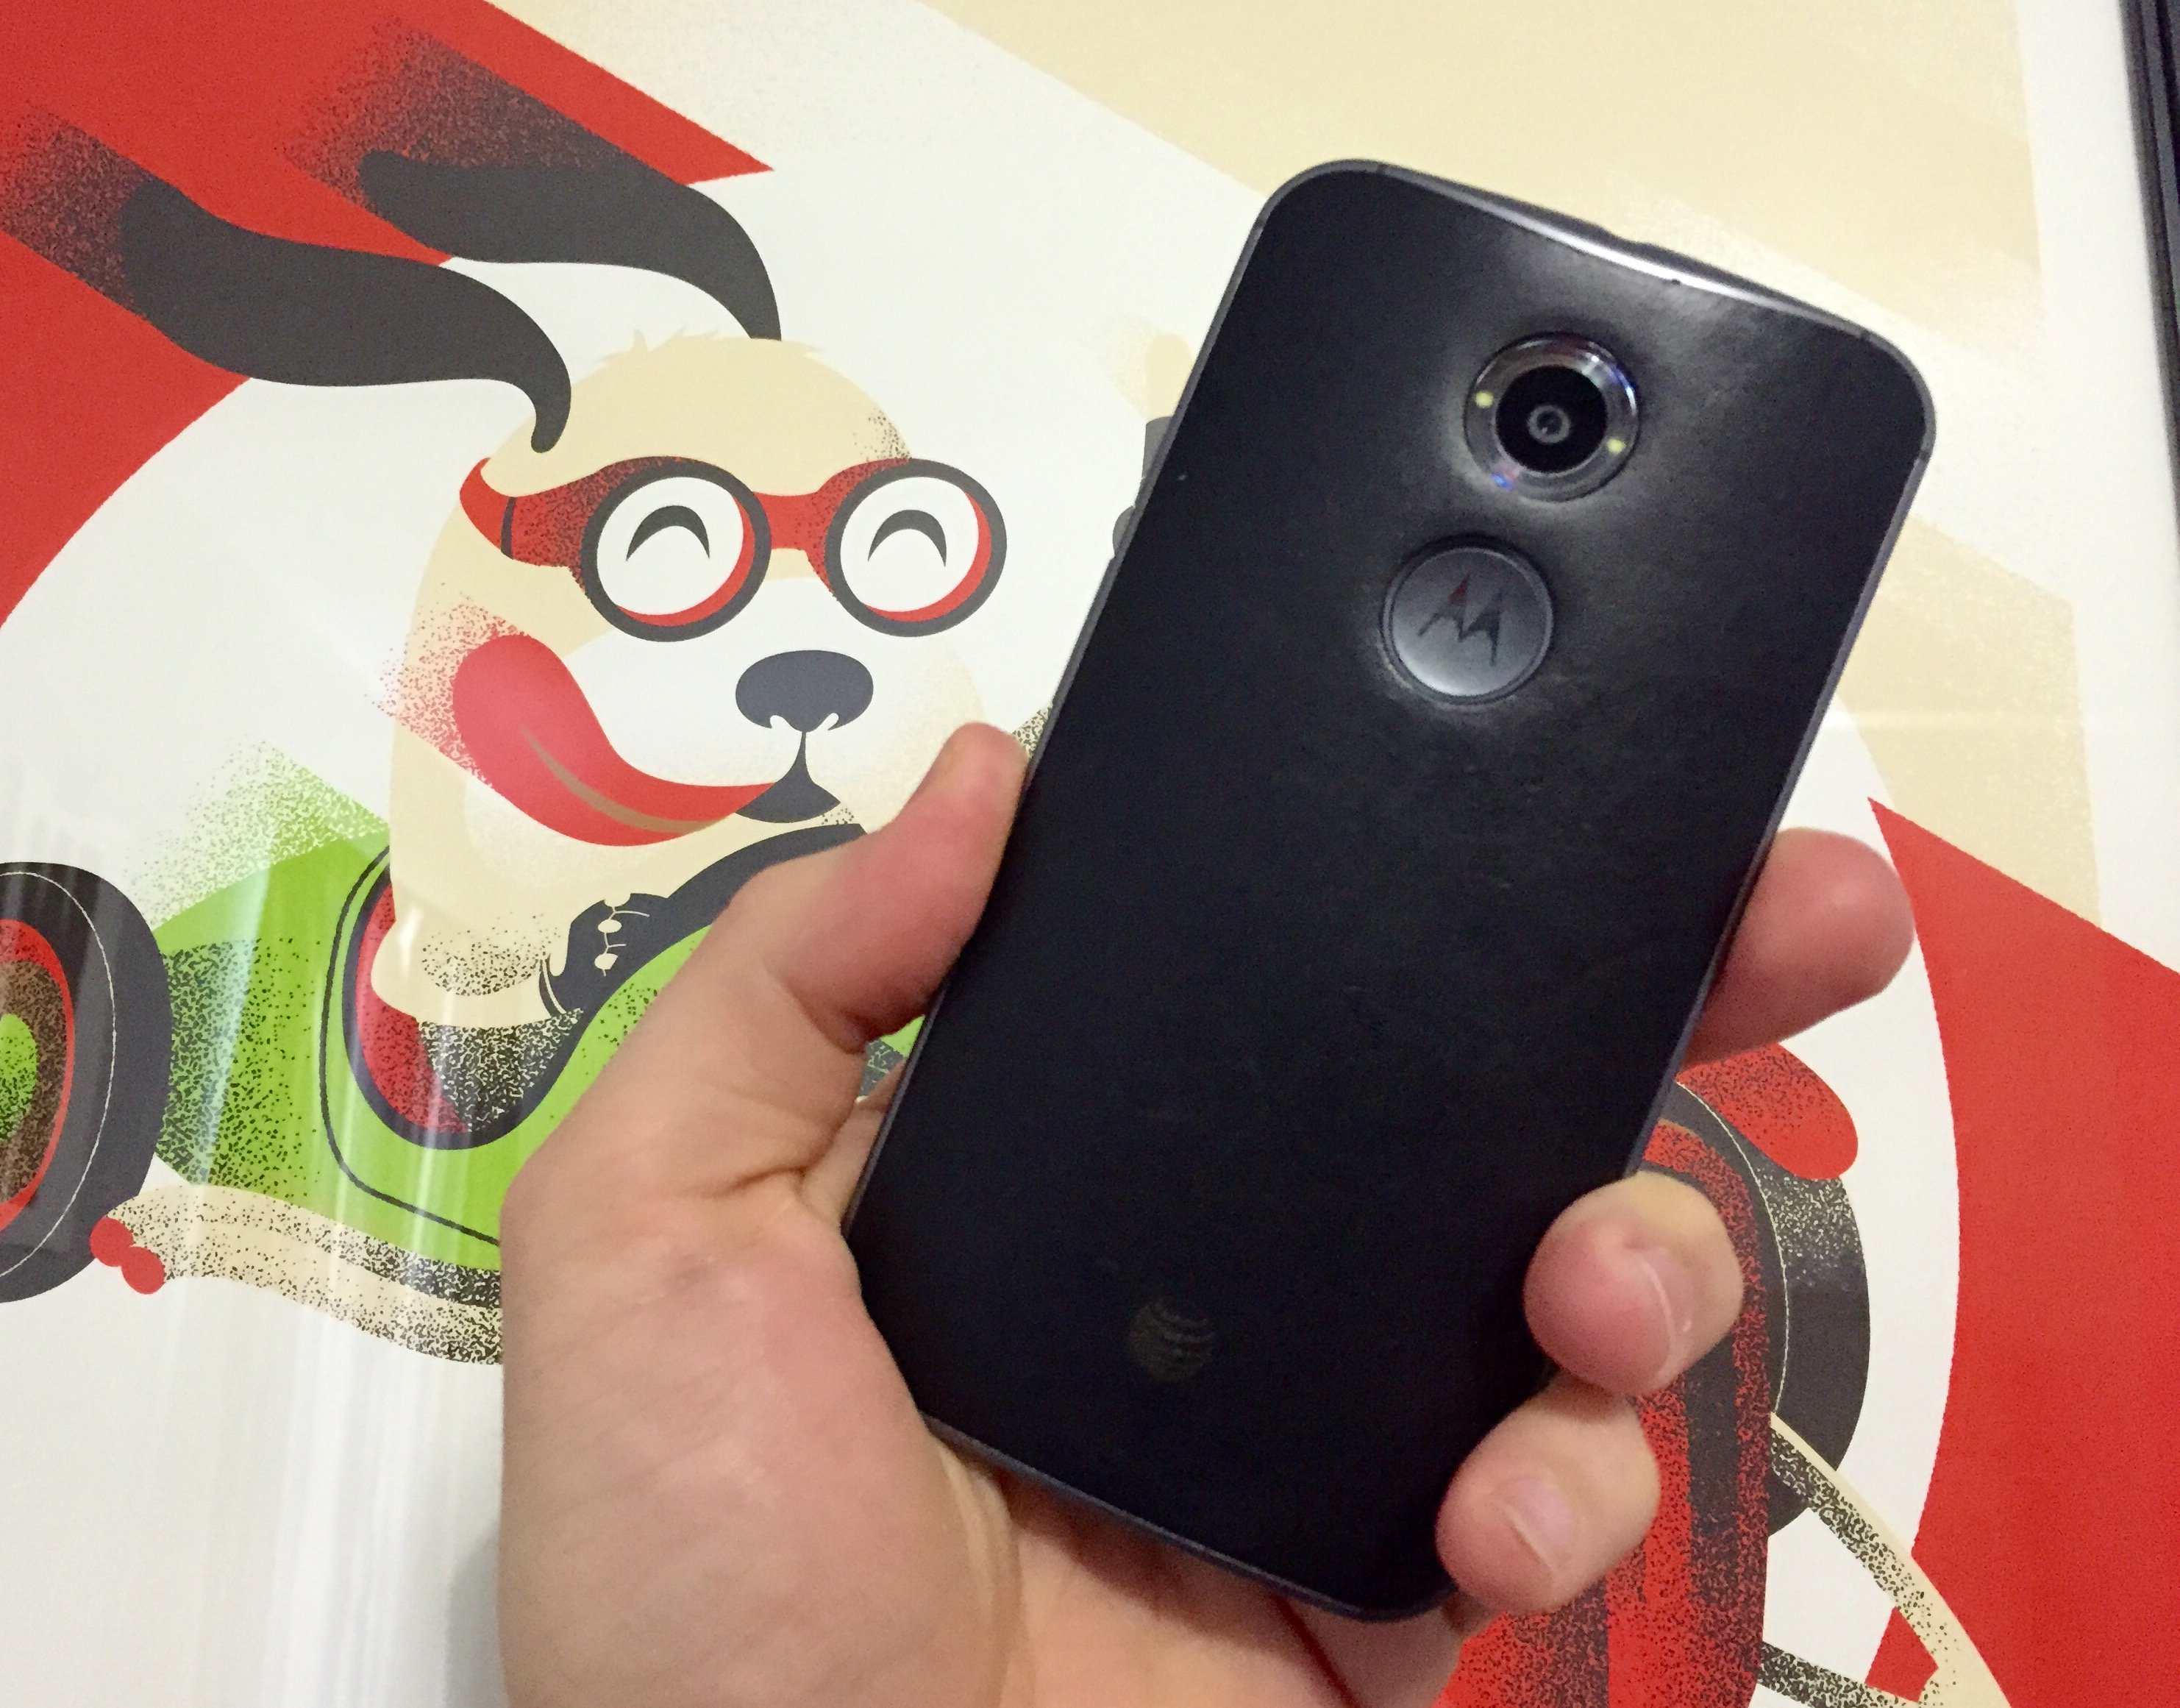 Here's what you need to know about the AT&T Moto X Lollipop update.